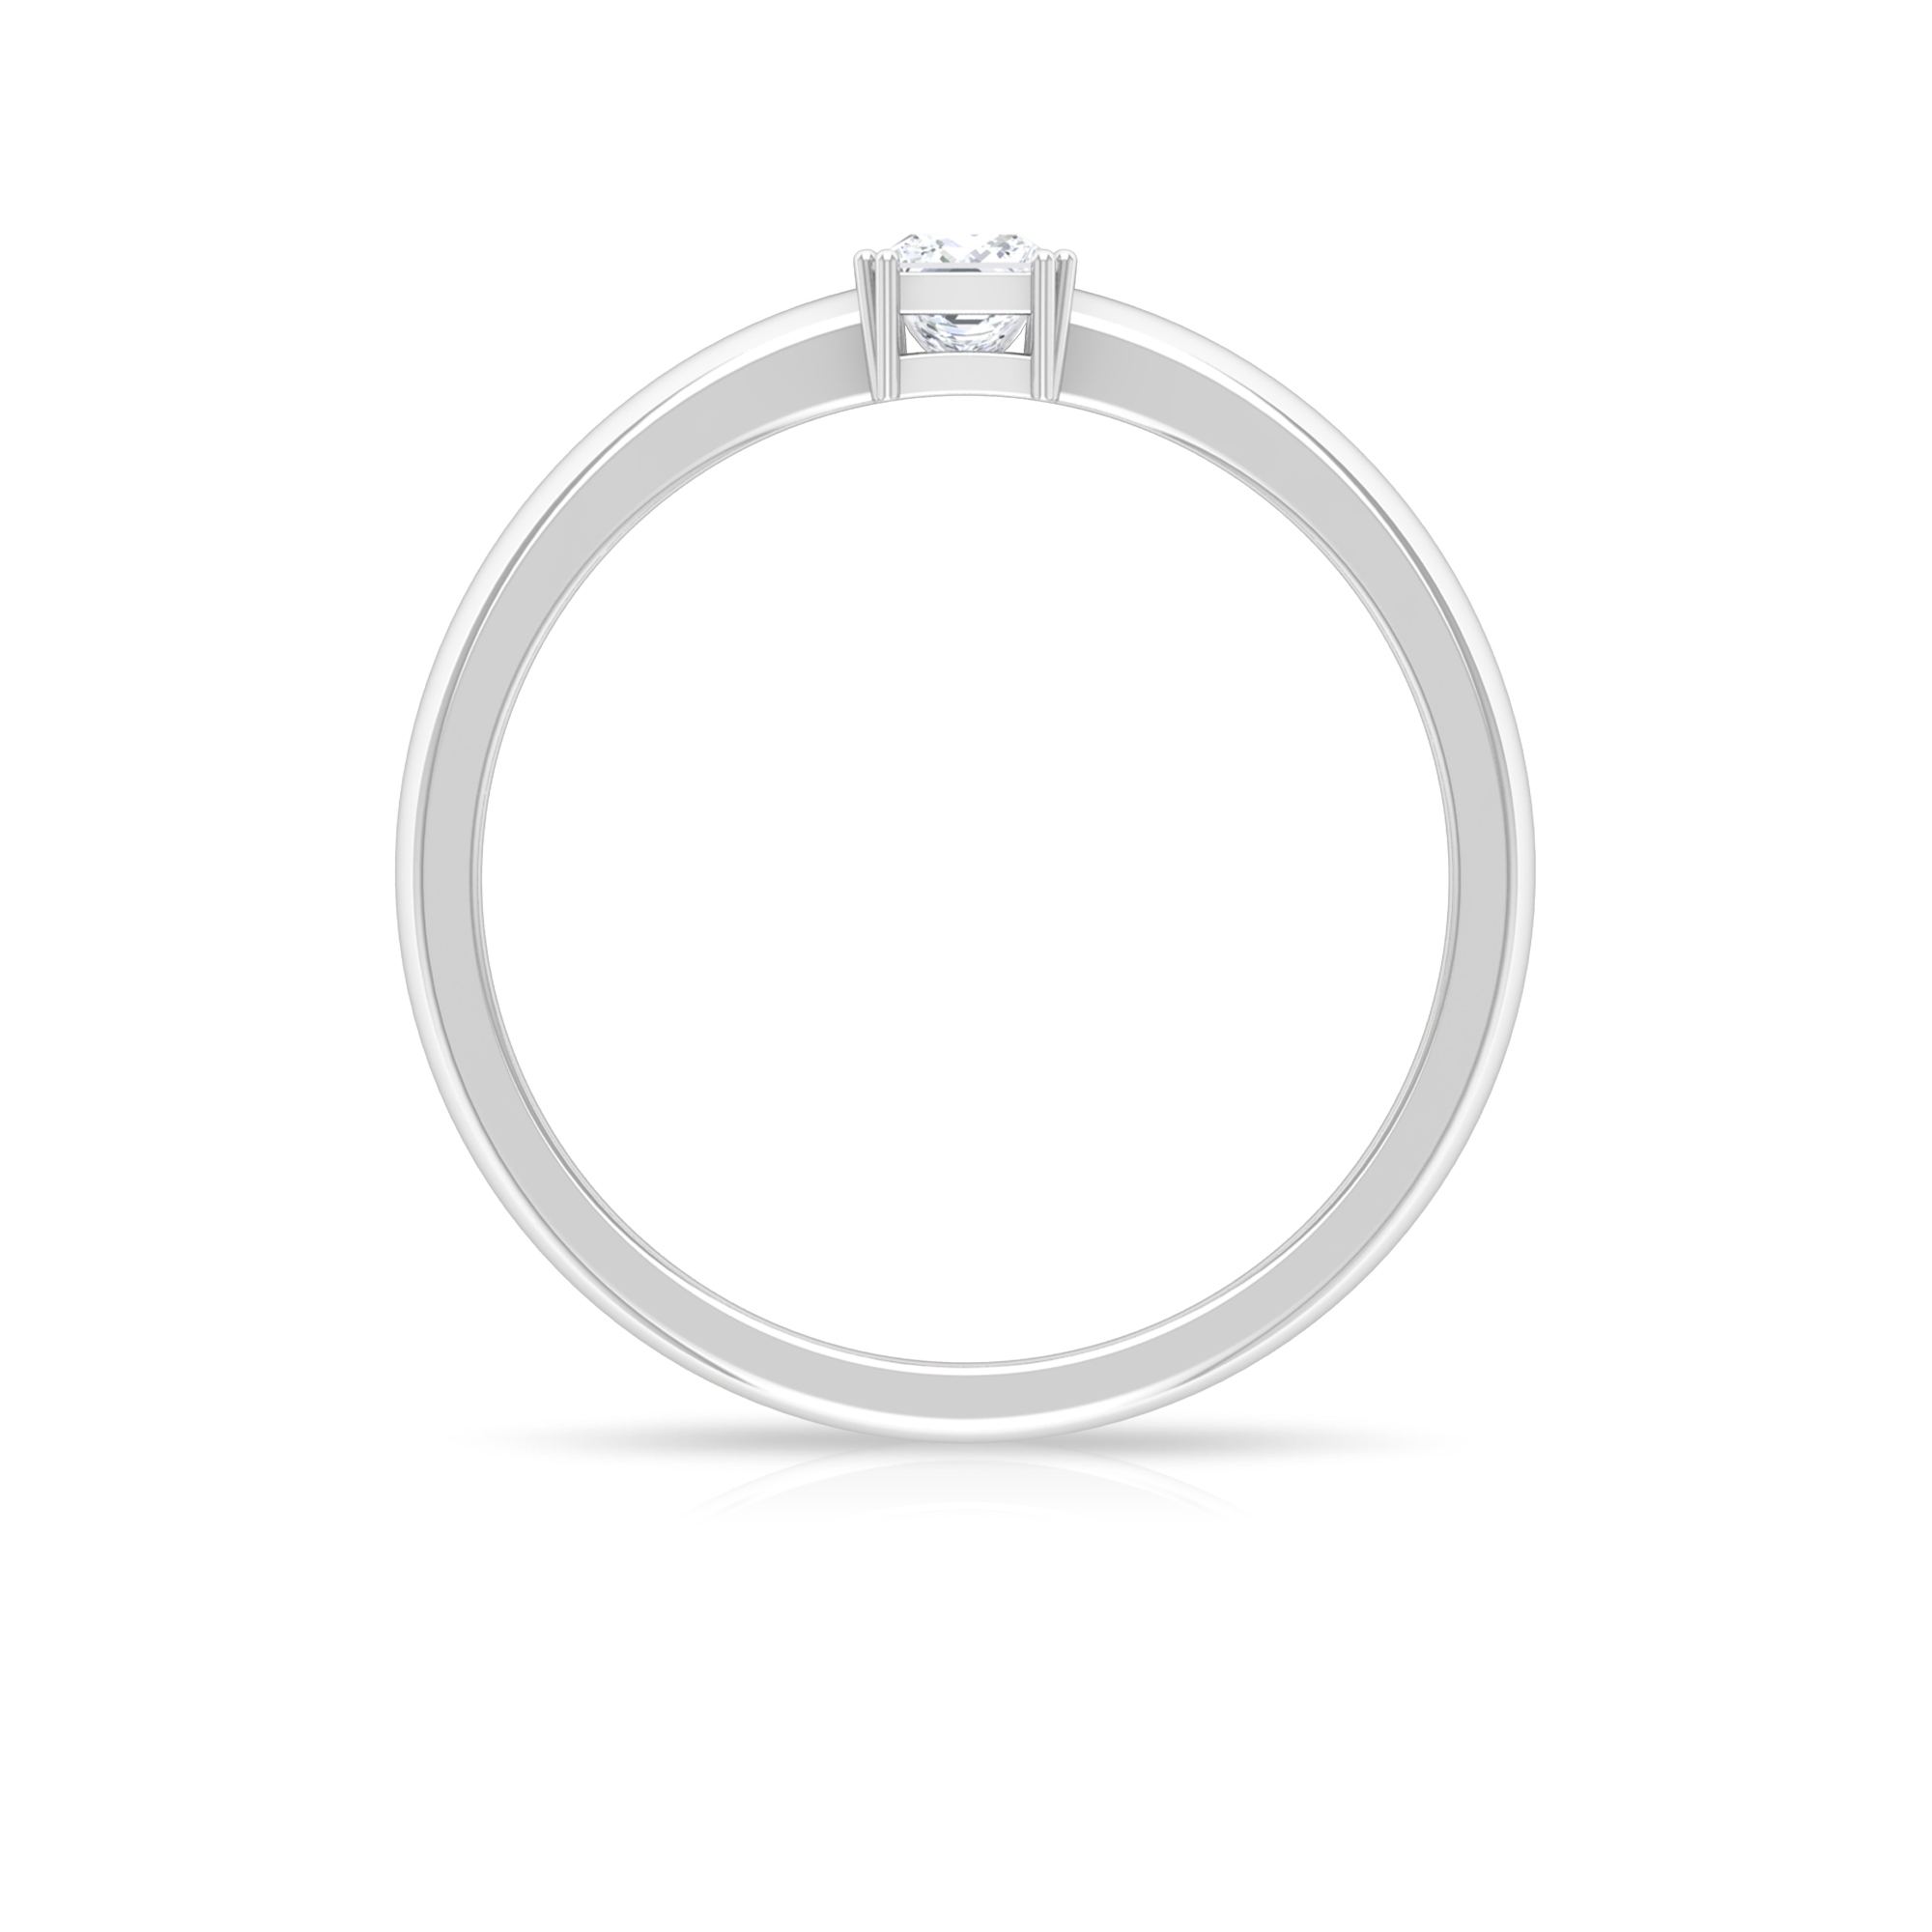 Princess Cut Diamond Solitaire Ring in Double Prong Setting